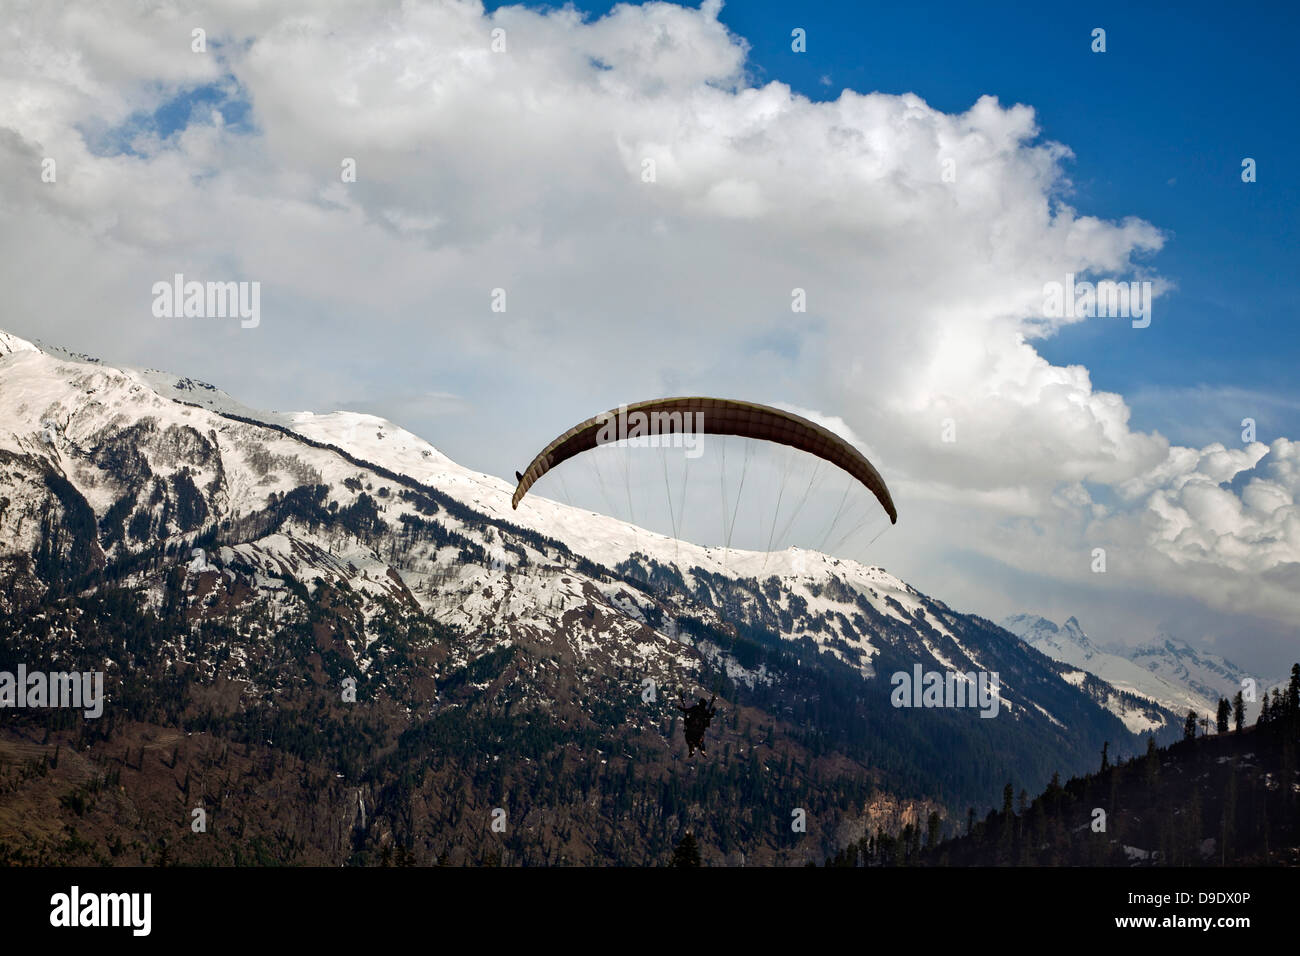 Paragliding over a valley, Manali, Himachal Pradesh, India - Stock Image